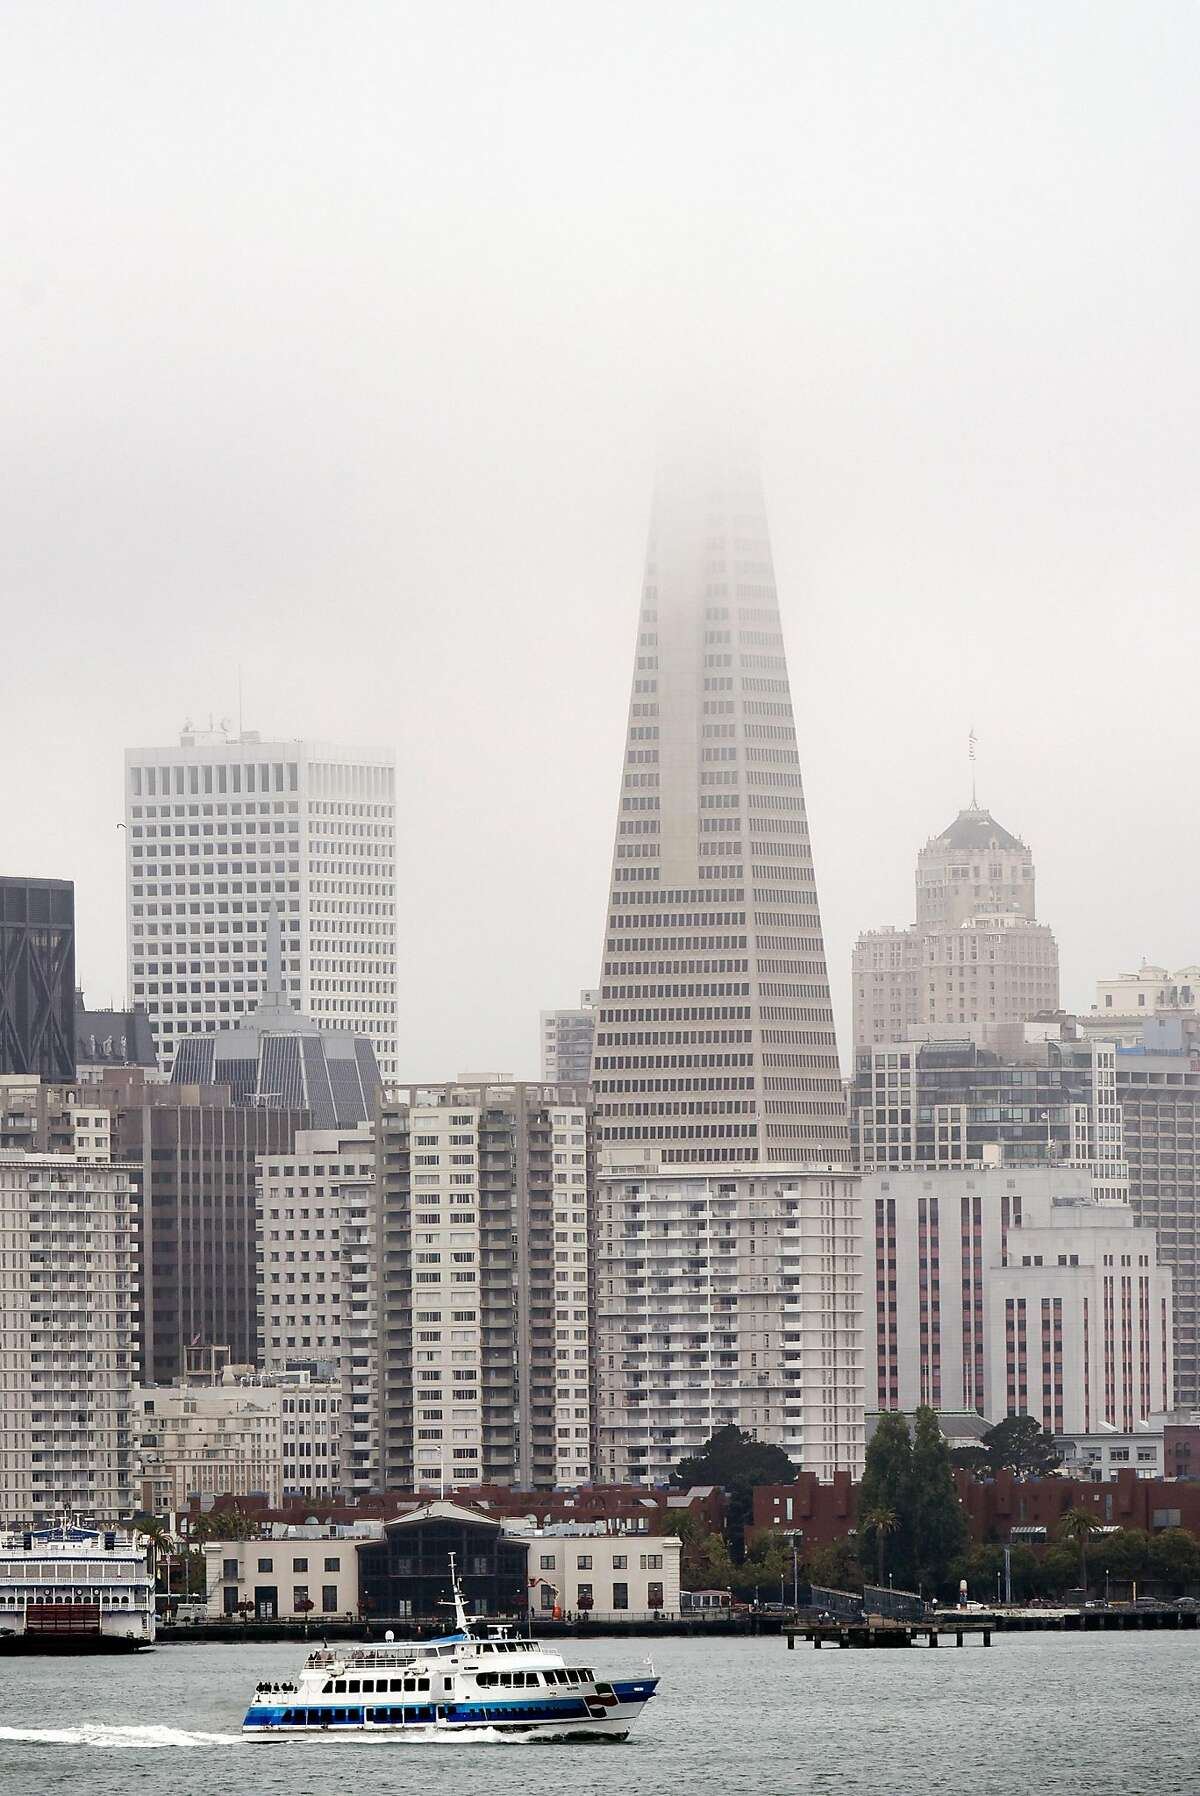 On a typical summer day, fog and clouds shroud the Transamerica Building, but that will change.